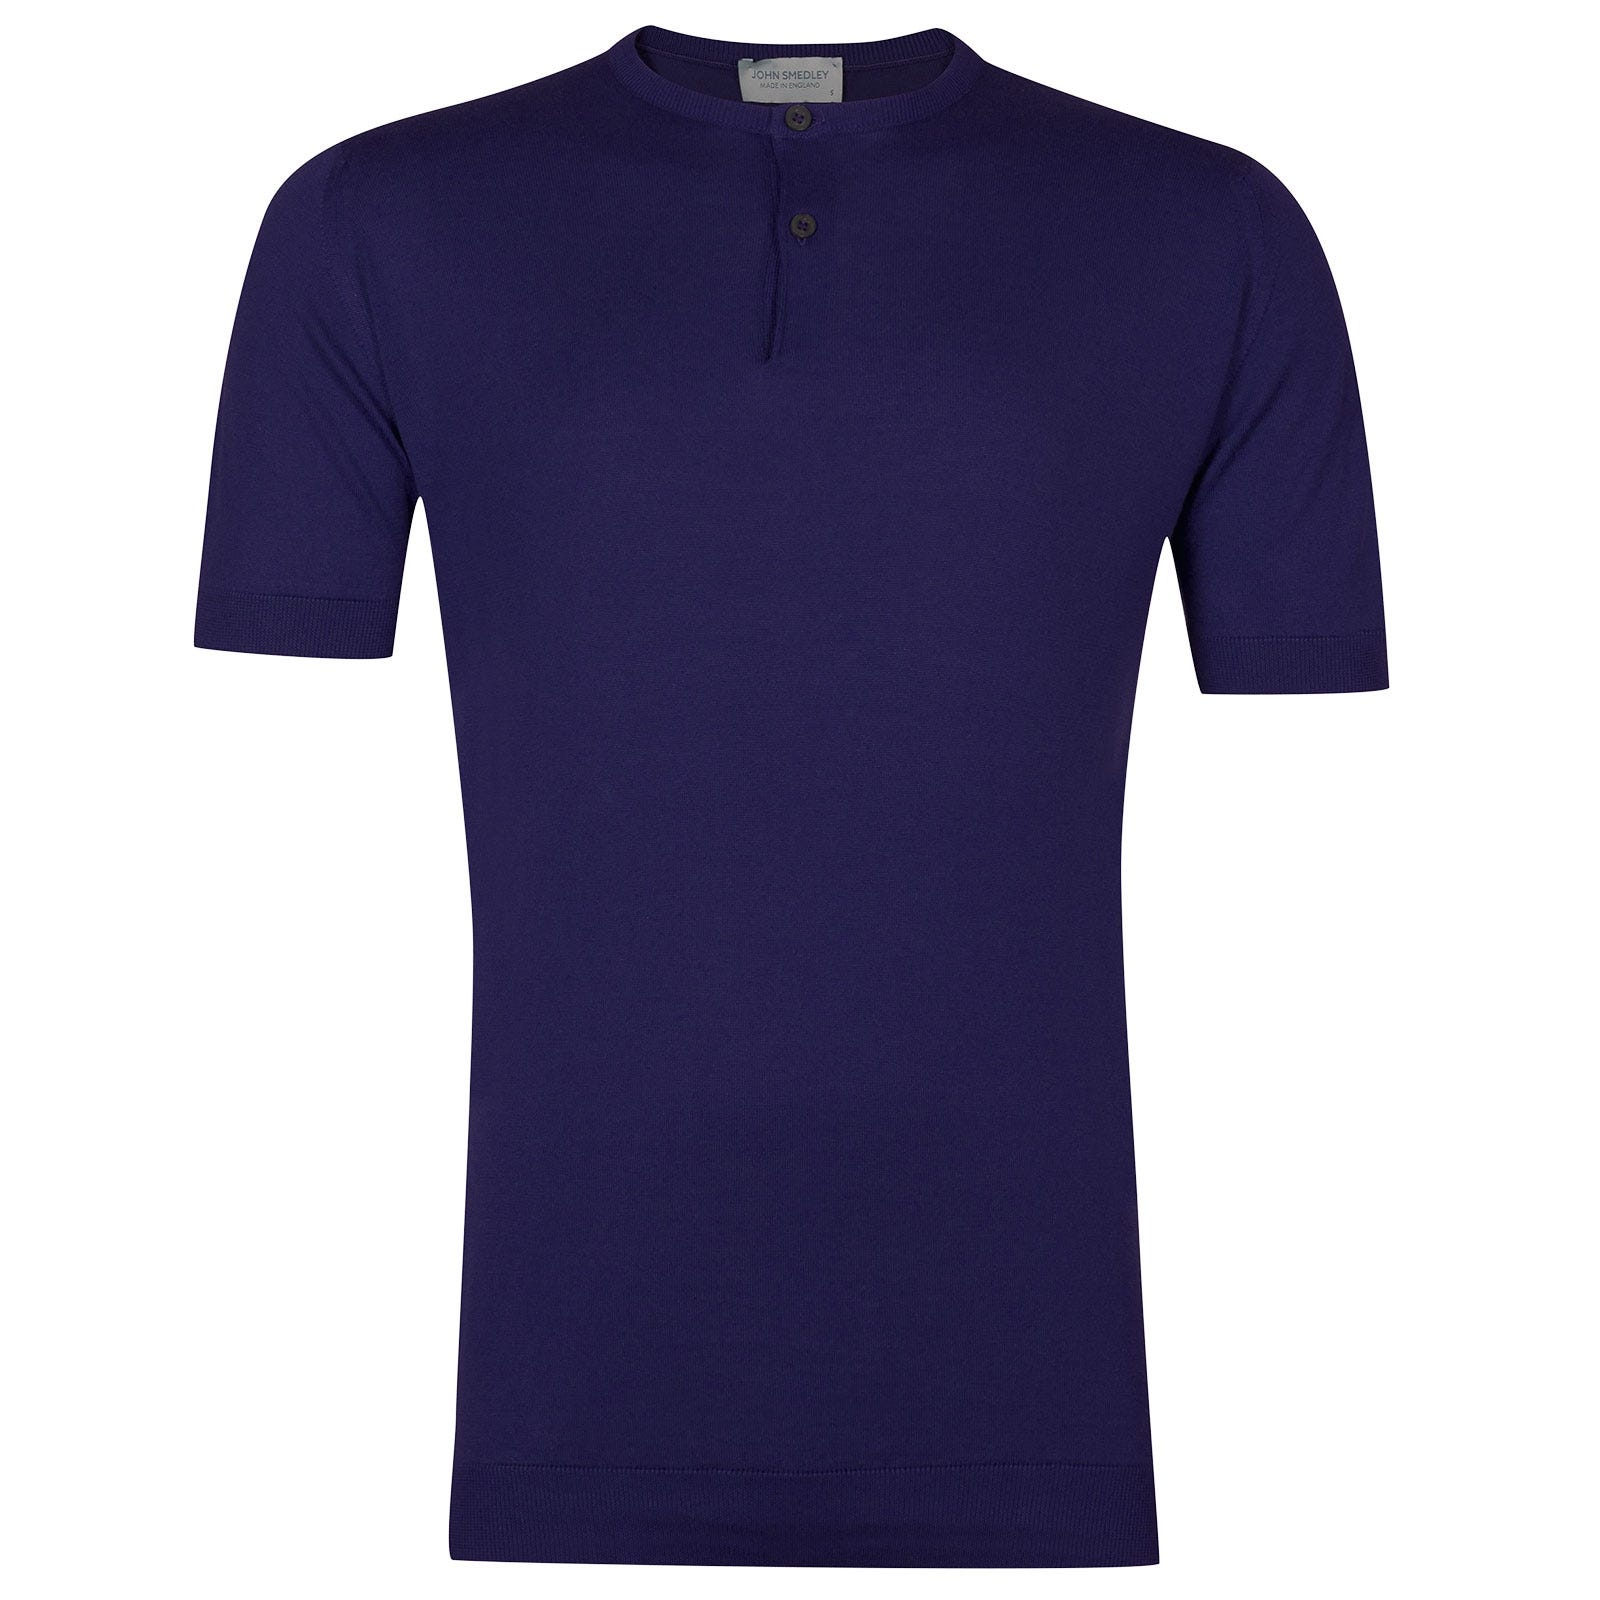 John Smedley Bennett Sea Island Cotton T-shirt in Serge Blue-XL